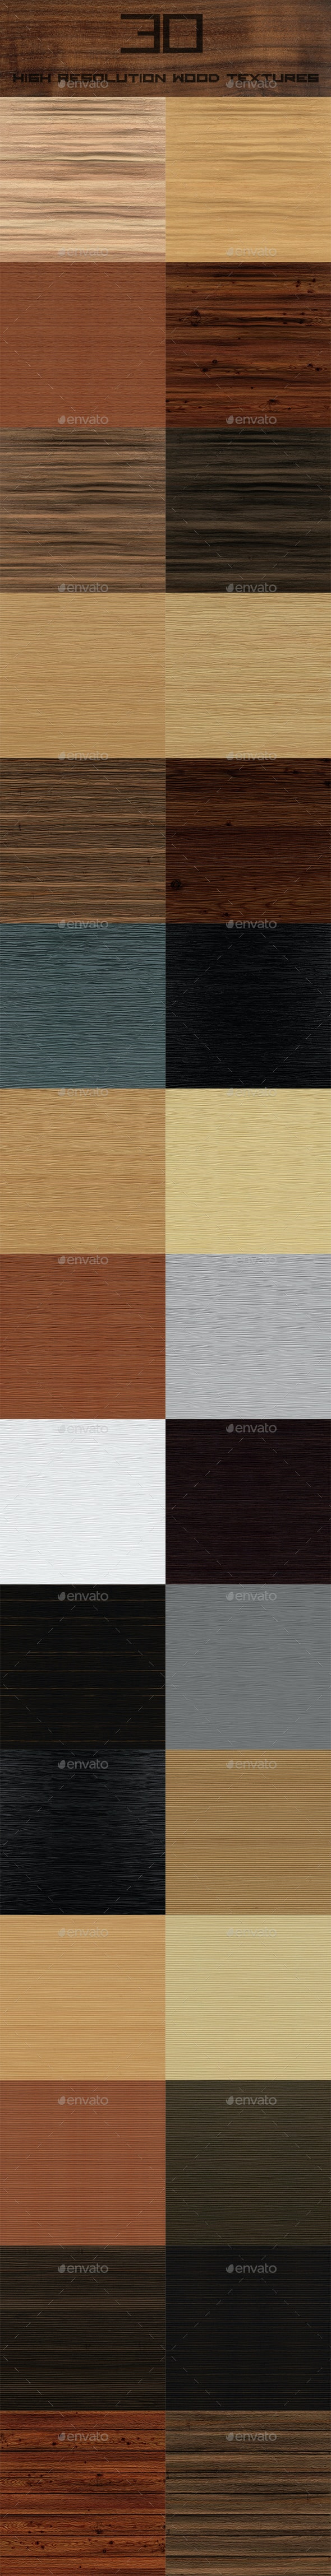 Wood Texture Pack - Wood Textures